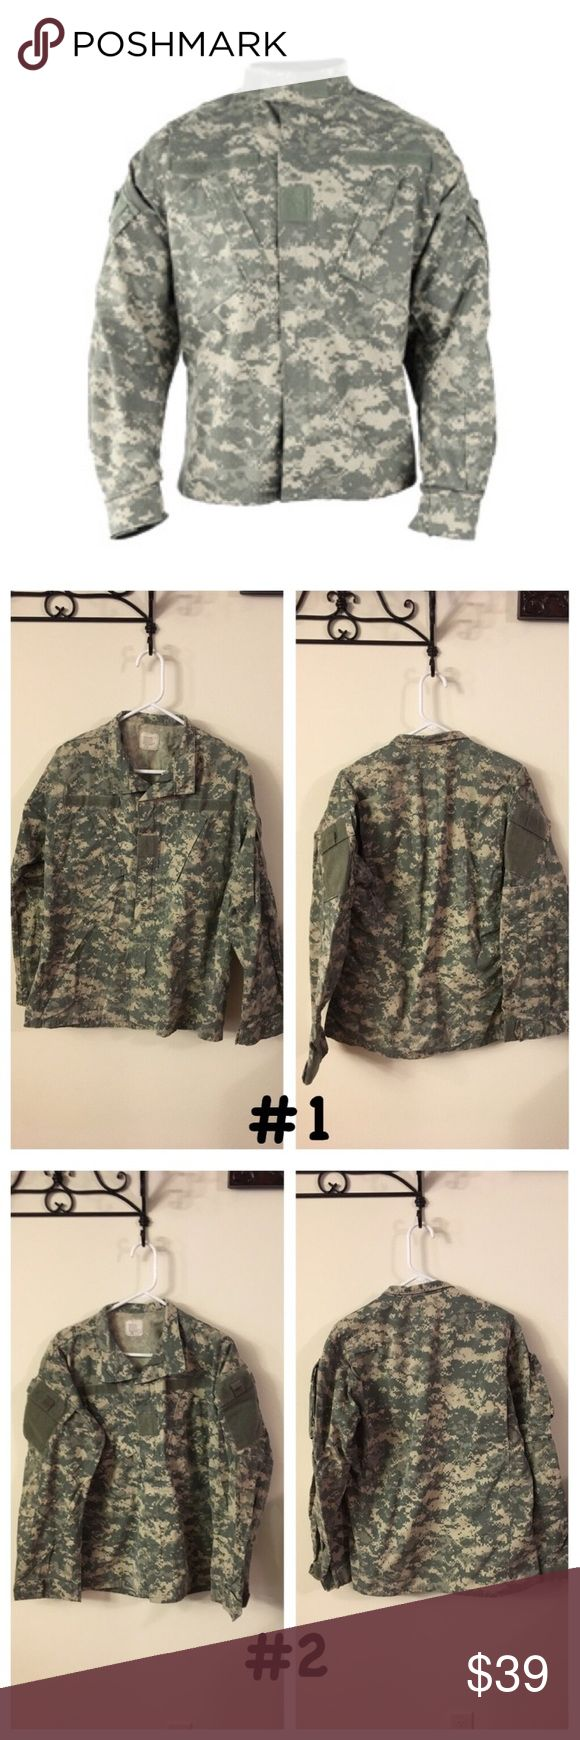 Army Combat Uniform Top size Medium-Long ❤Same day shipping (excluding Sun/holidays or orders placed after P.O. Closed)  PRICE FIRM unless bundled. ❤  Price is for 1 top! Size Medium Long Army Combat Uniform Tops. Each photo is front/back of each separate Top. Gender neutral uniforms. Normal wear from use but free from holes/stains. Smoke/pet free home. Some of the labels have writing. My husband had a system to keep tops/bottoms together. Army Shirts